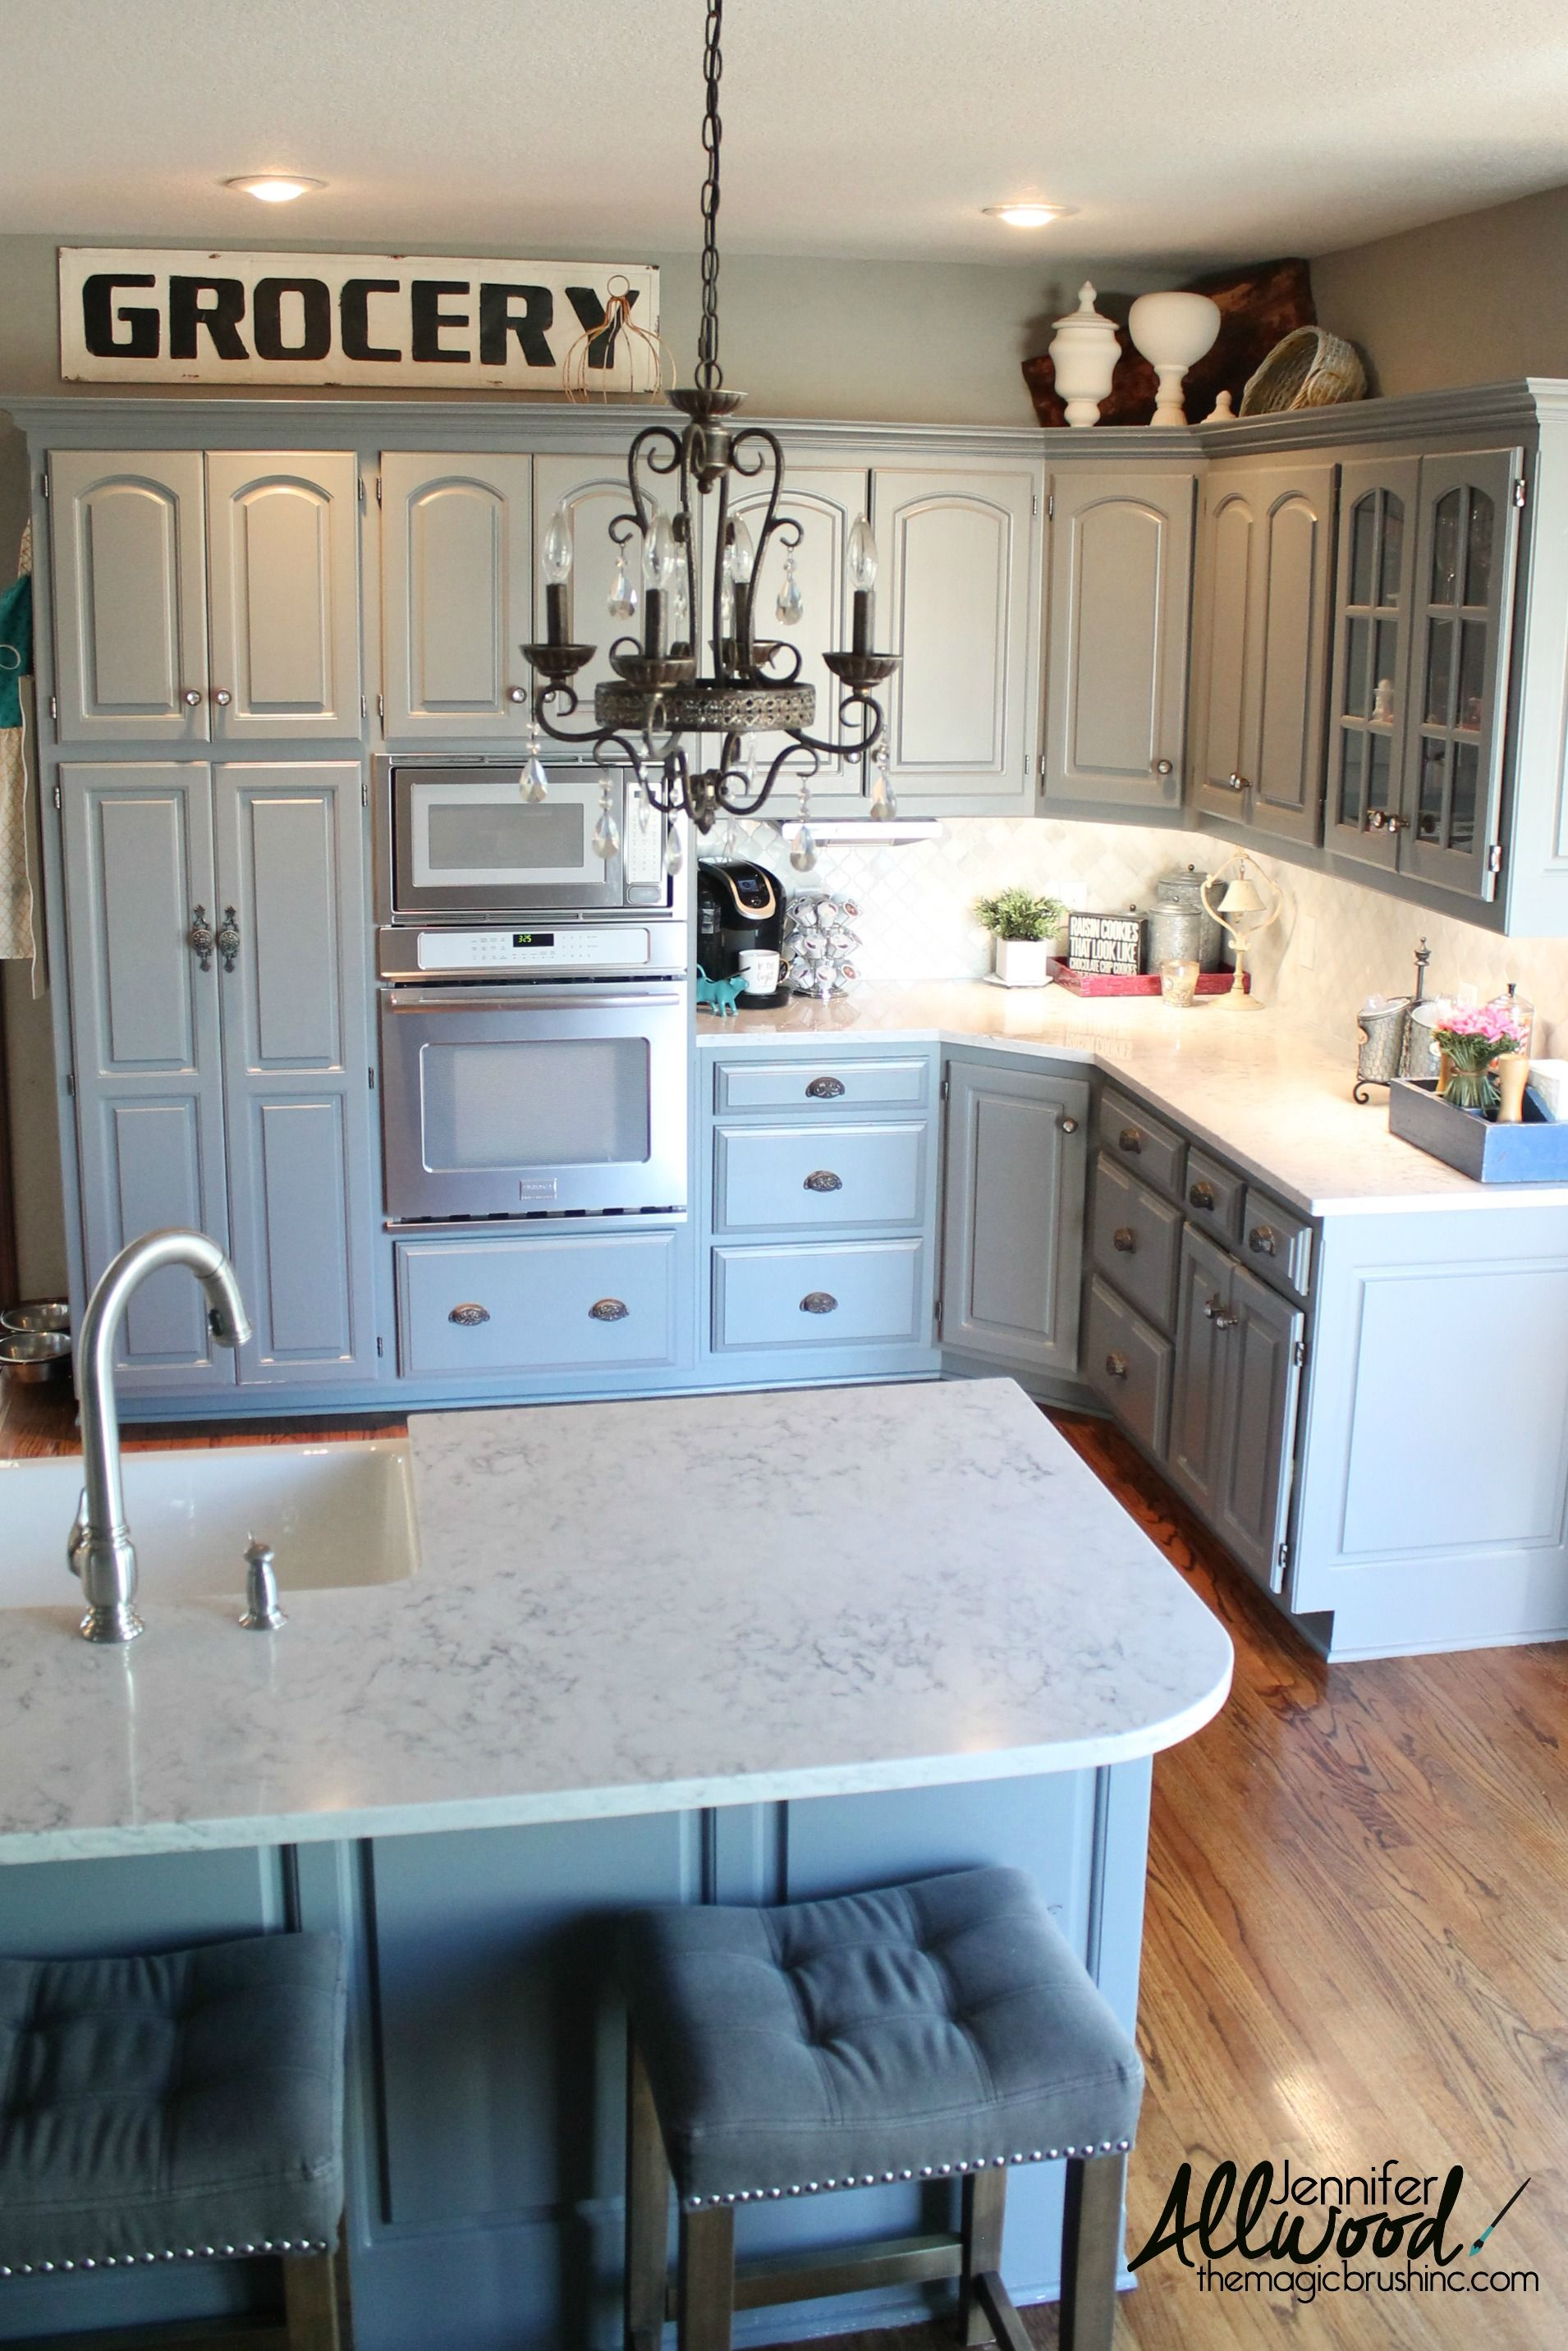 Silestone Countertops And Lowering The Bar Our Kitchen Remodel Jennifer Allwood Home In 2020 Silestone Countertops Kitchen Remodel Diy Kitchen Countertops